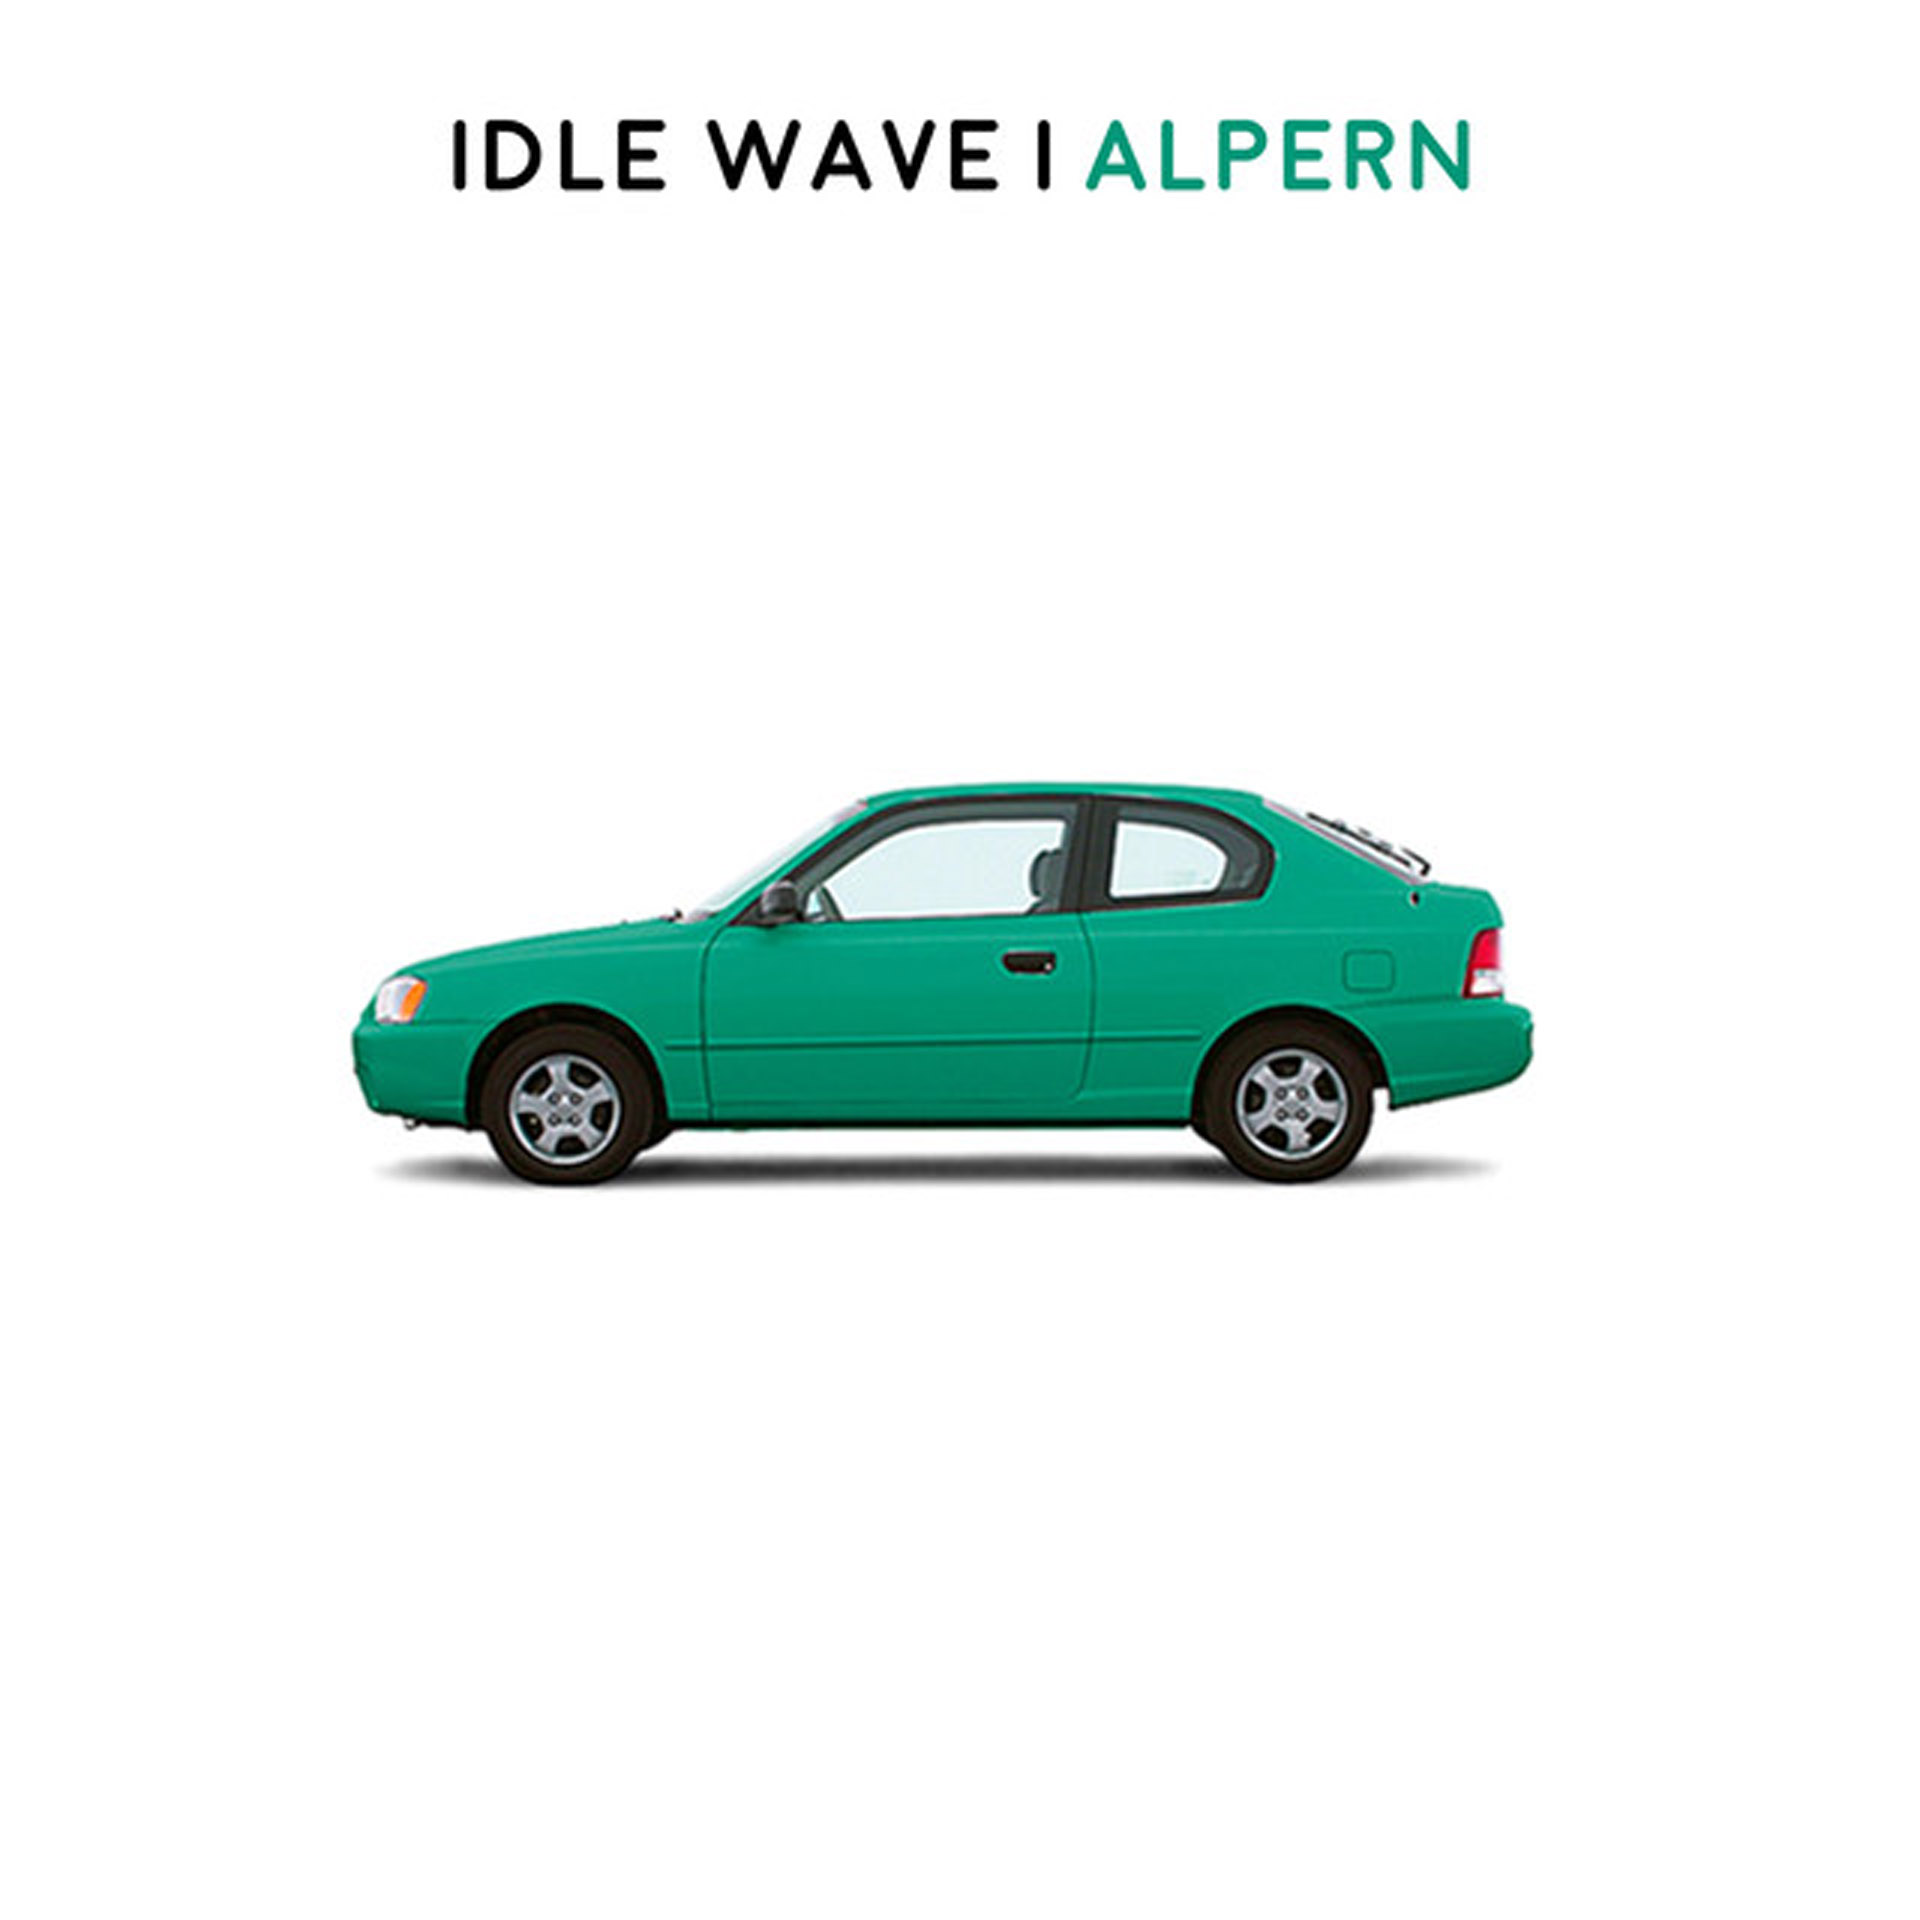 Idle Wave Alpern cover.jpeg